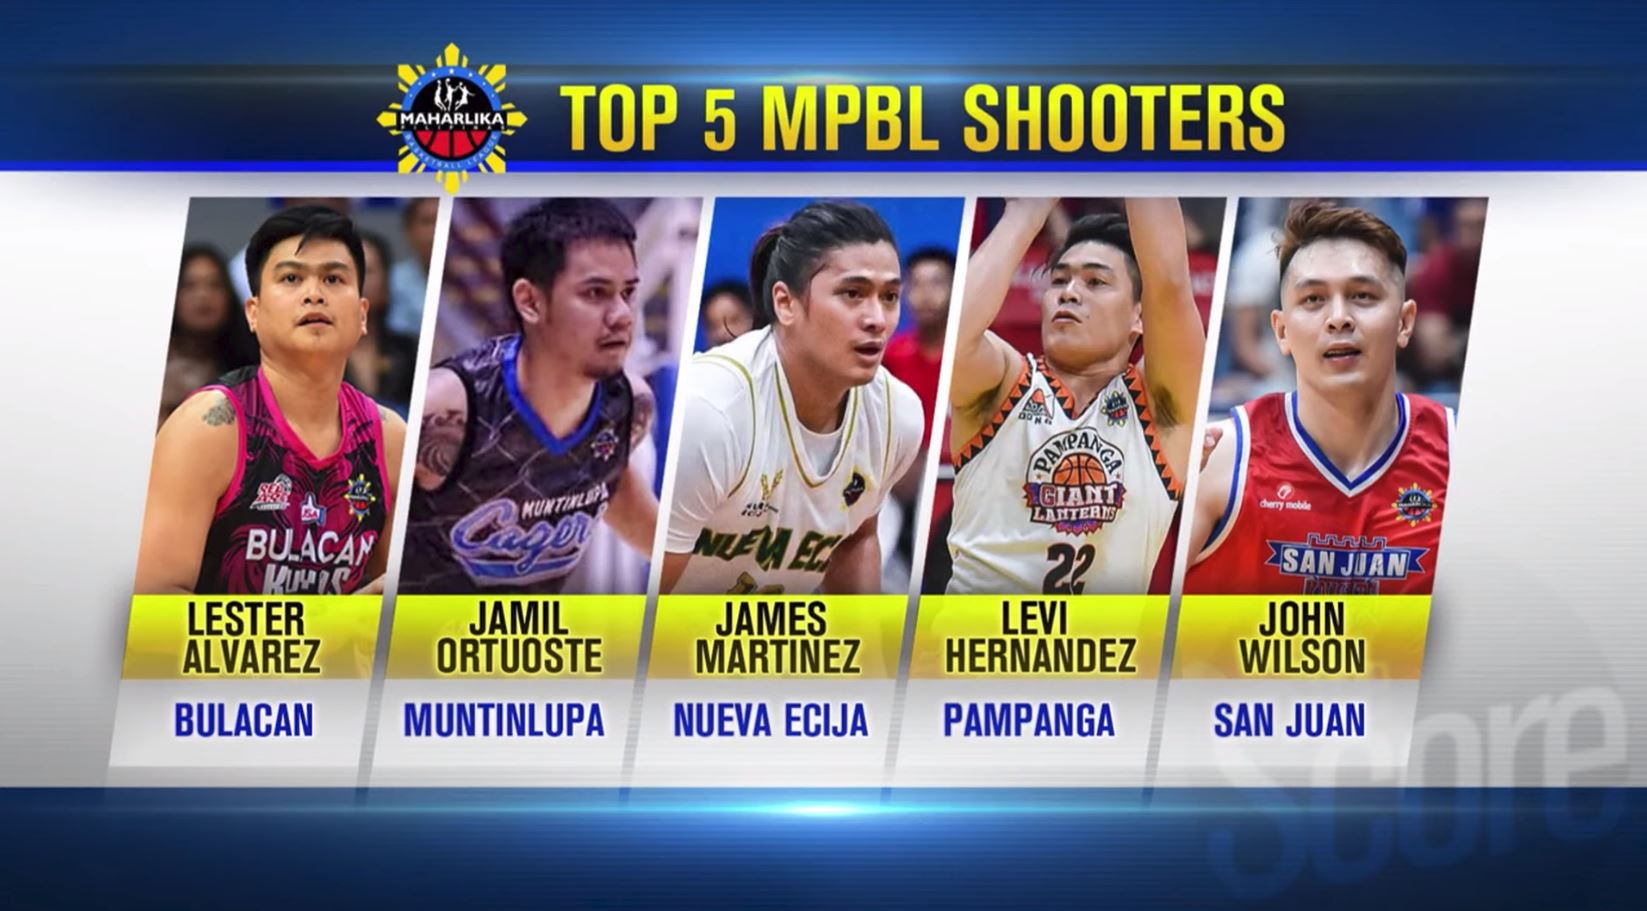 Shoot your shot with some help from the Top Shooters in the MPBL_1